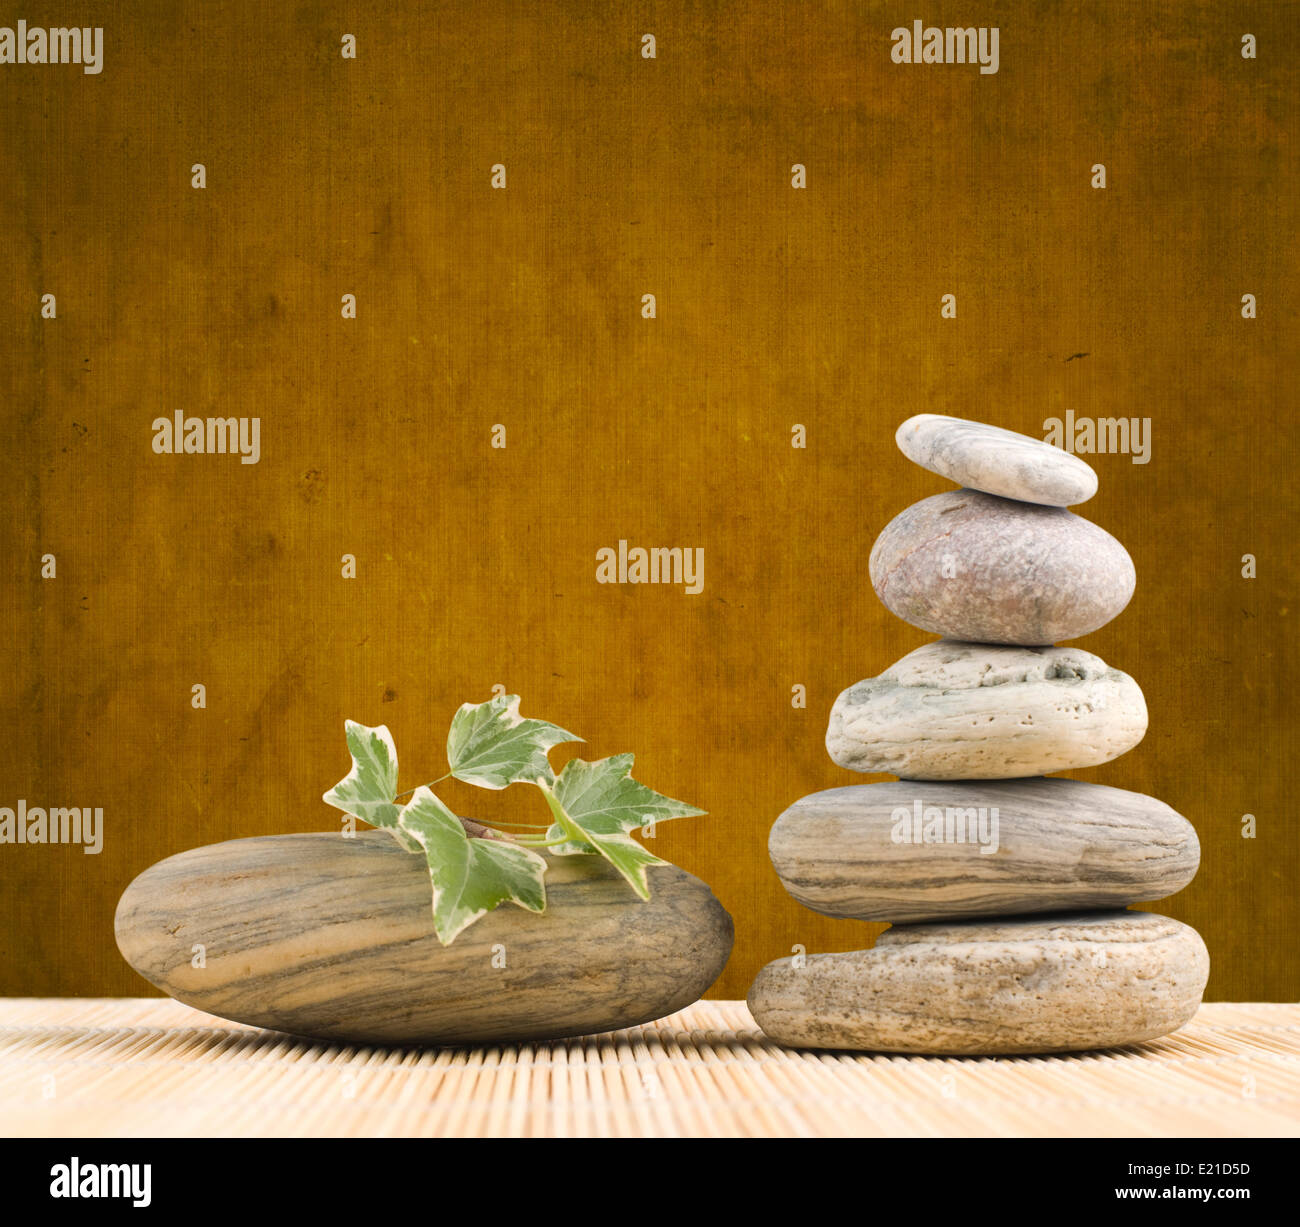 Stack pebbles with grungy background - Stock Image